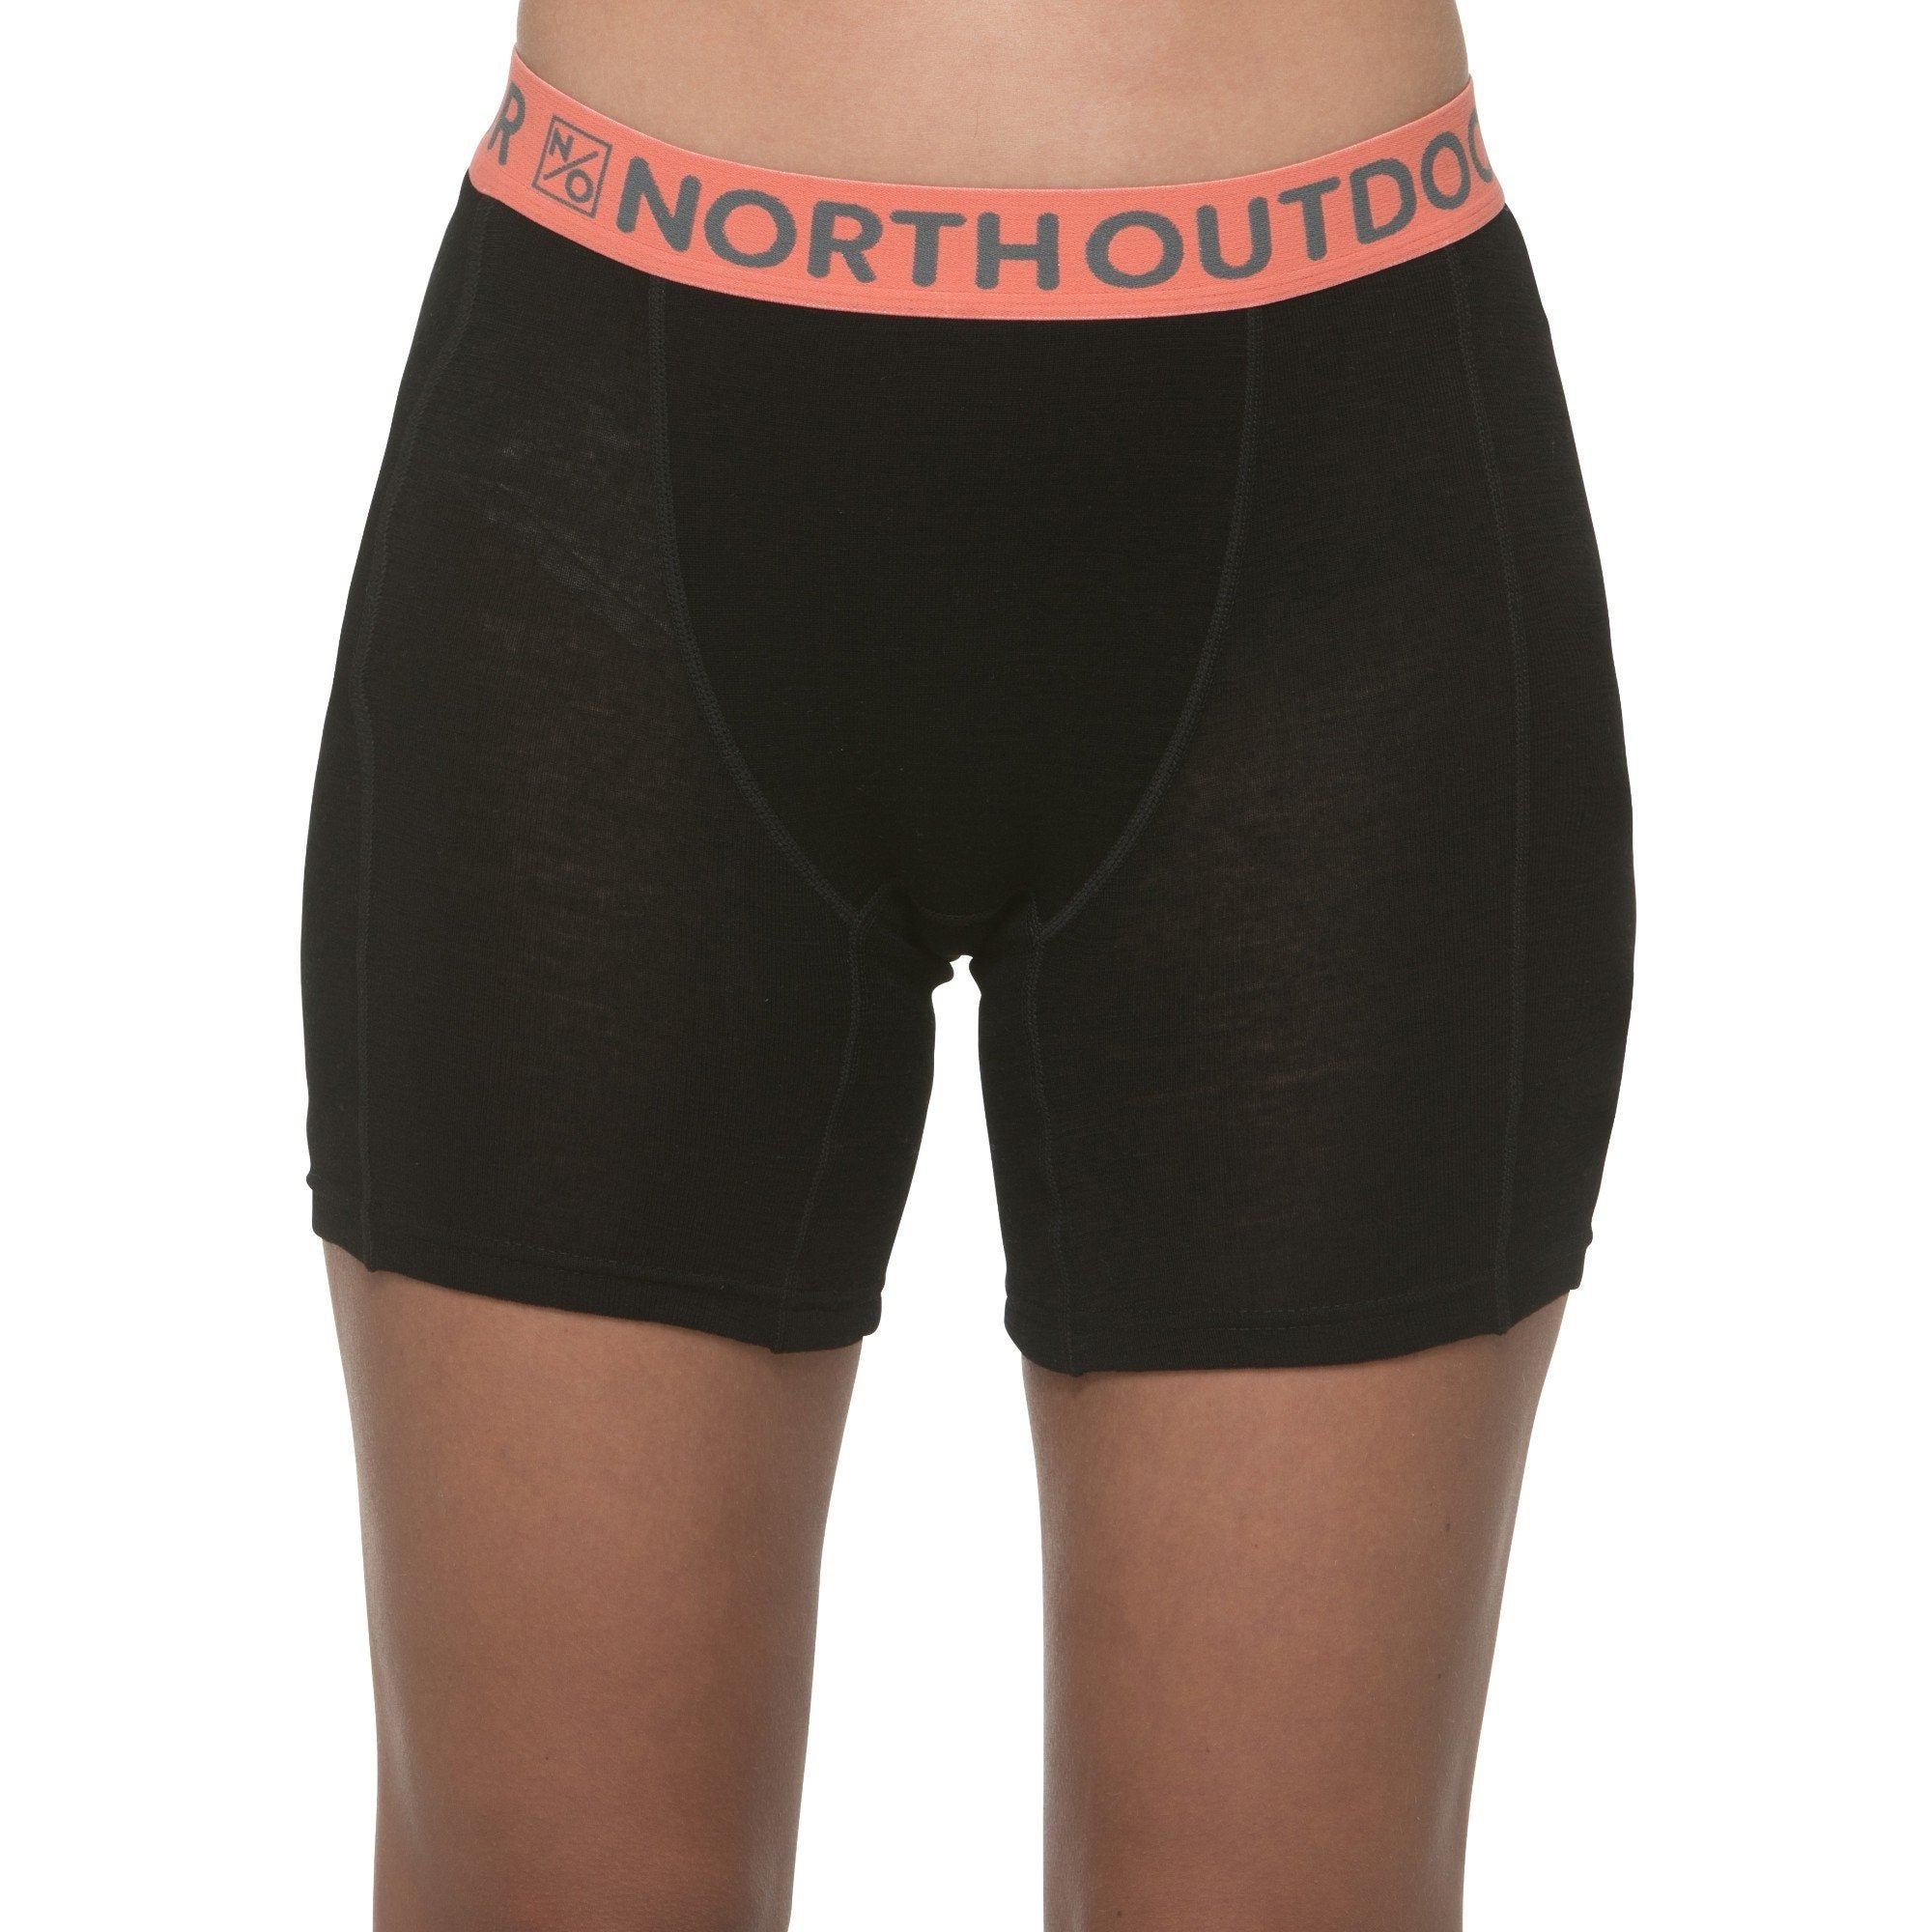 North Outdoor - Women's boxers - 100 % Merinowool ACTIVE 210 - Weekendbee - sustainable sportswear